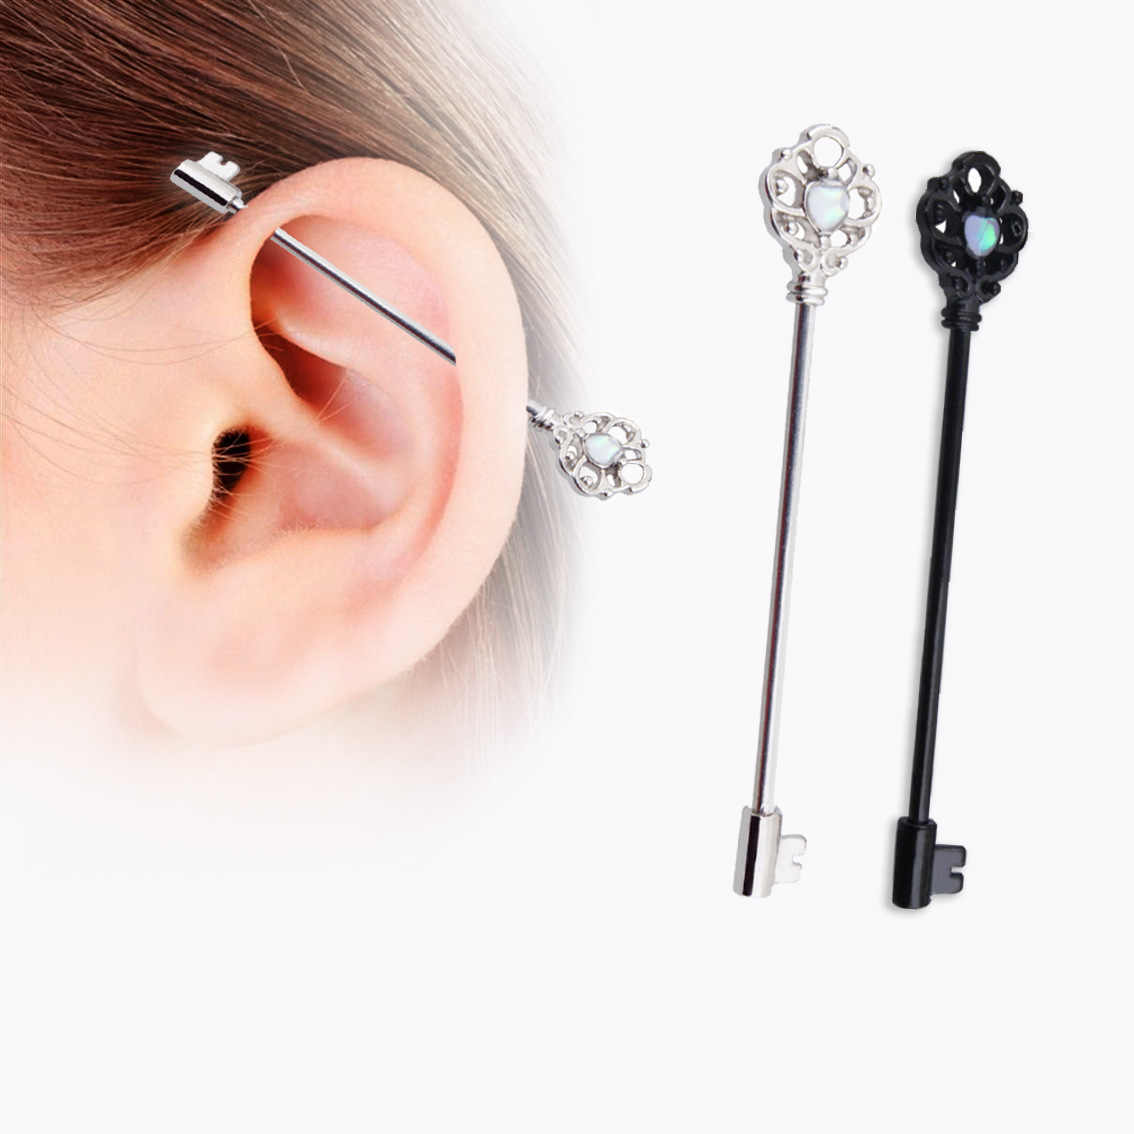 1pc Key Steel Anodized Color Industrial Piercing Length Industrial